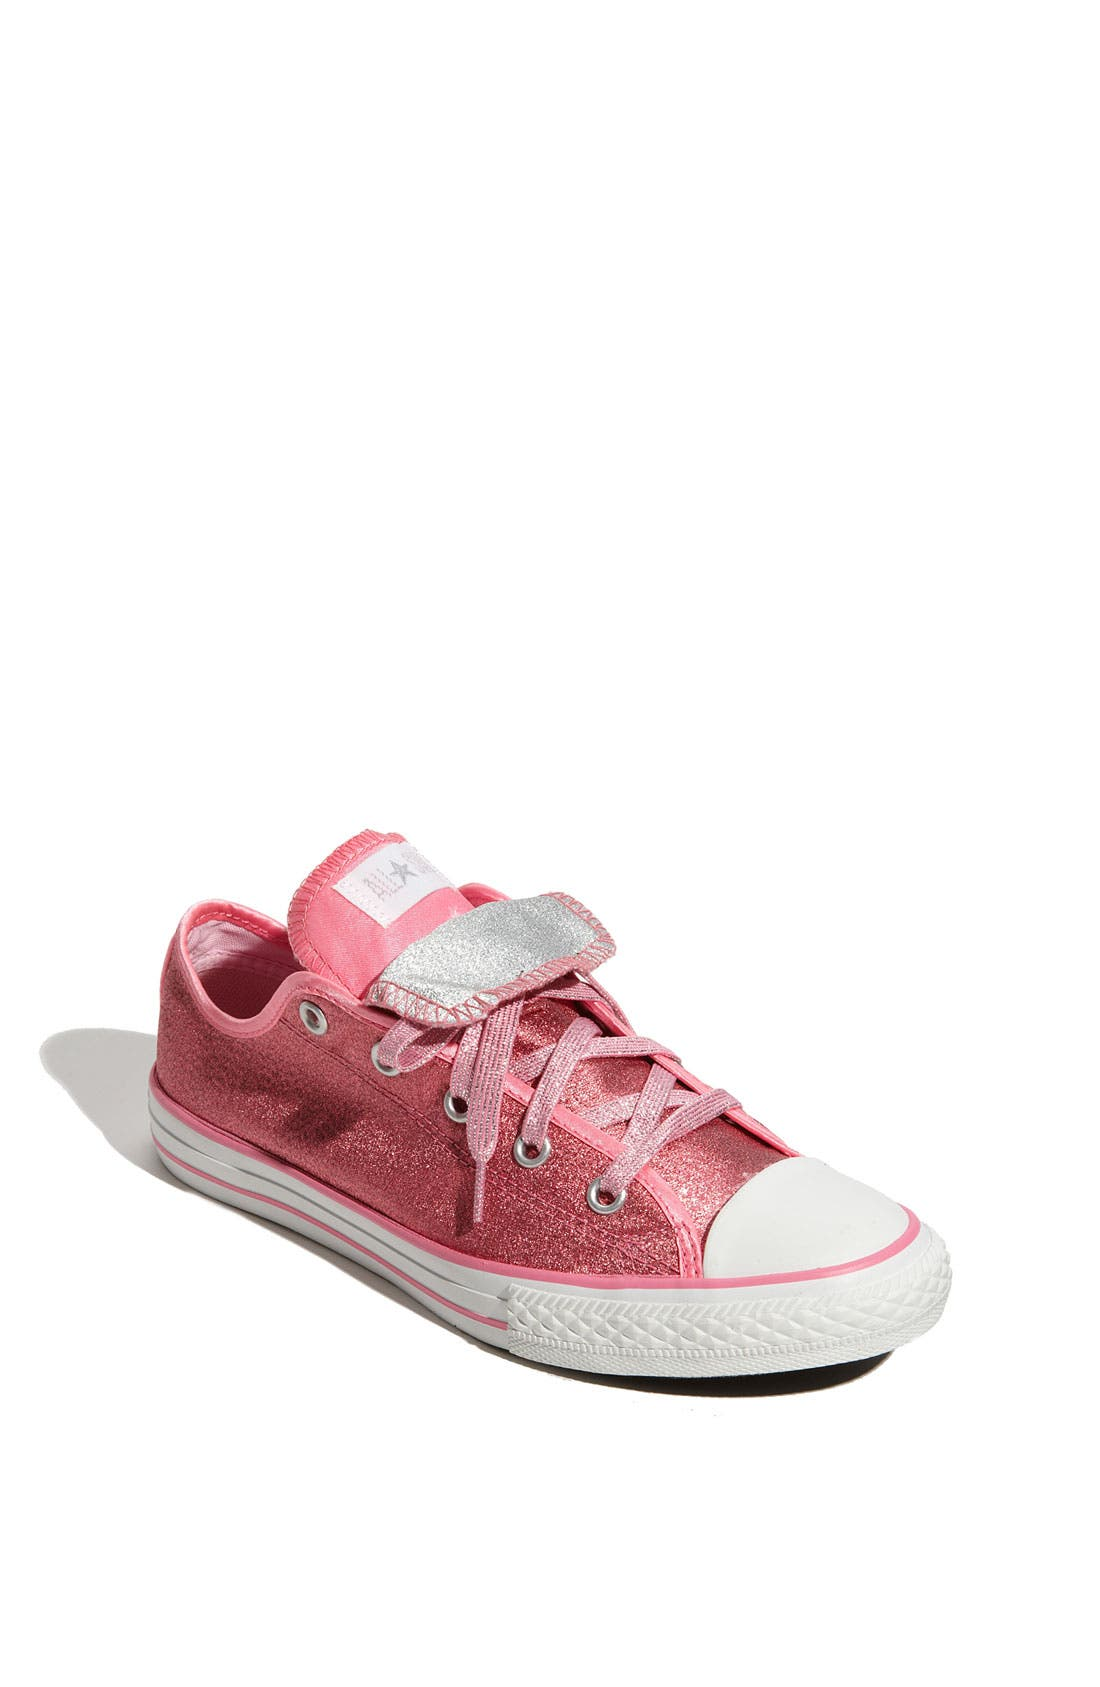 Main Image - Converse Double Tongue Sneaker (Toddler, Little Kid & Big Kid)